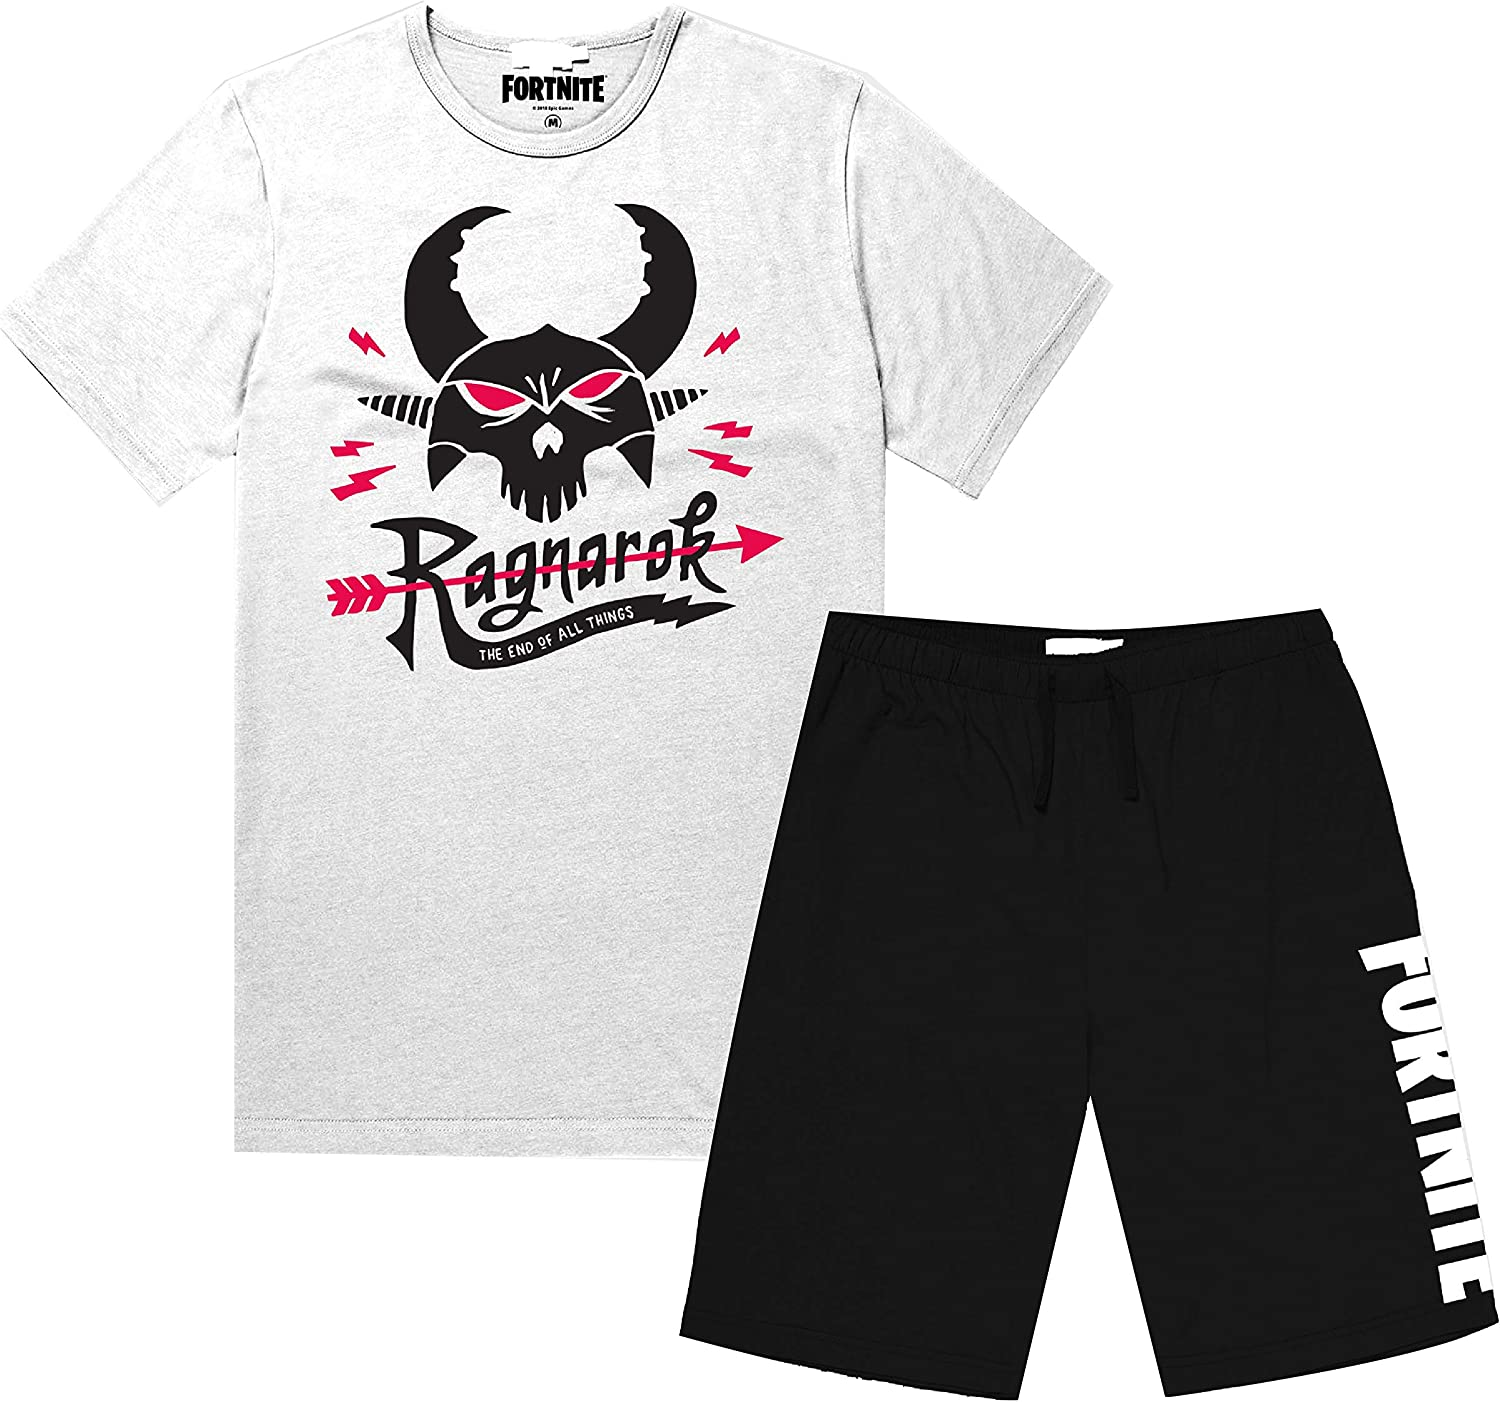 Official Fortnite Mens T-Shirt and Shorts Set